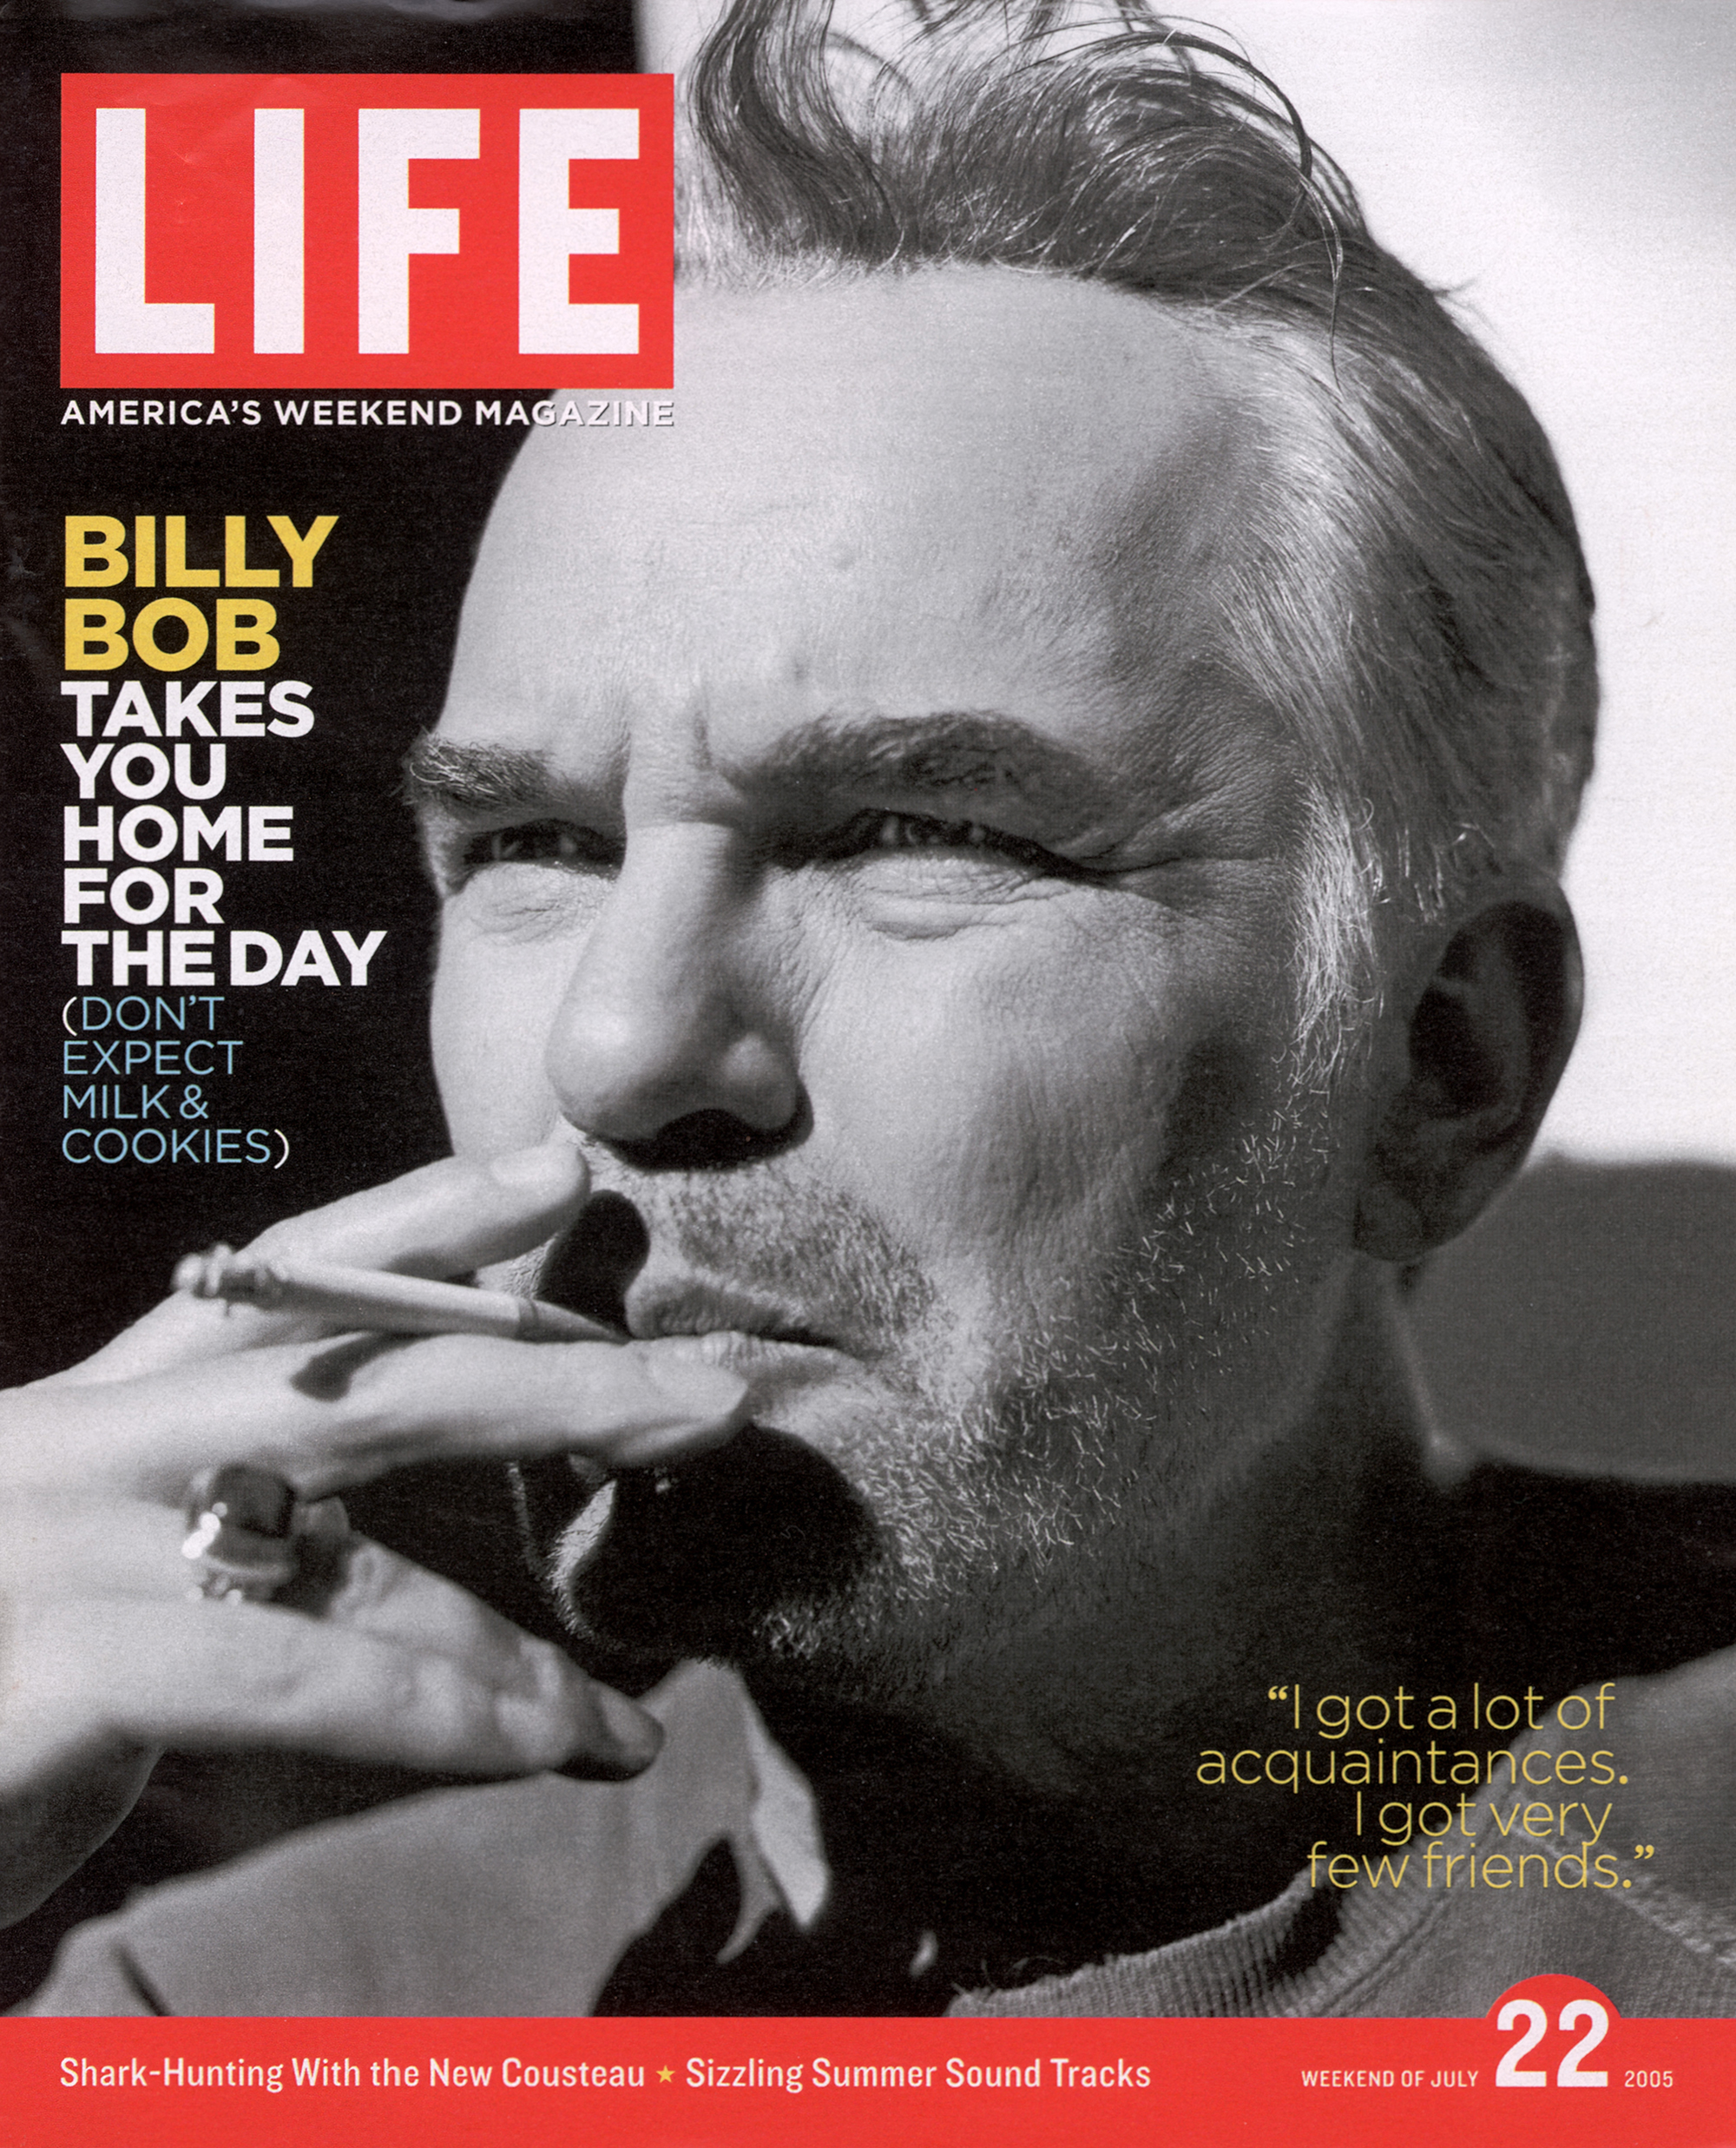 LIFE Cover 07-22-2005 of actor Billy Bob Thornton smoking a cigarette.